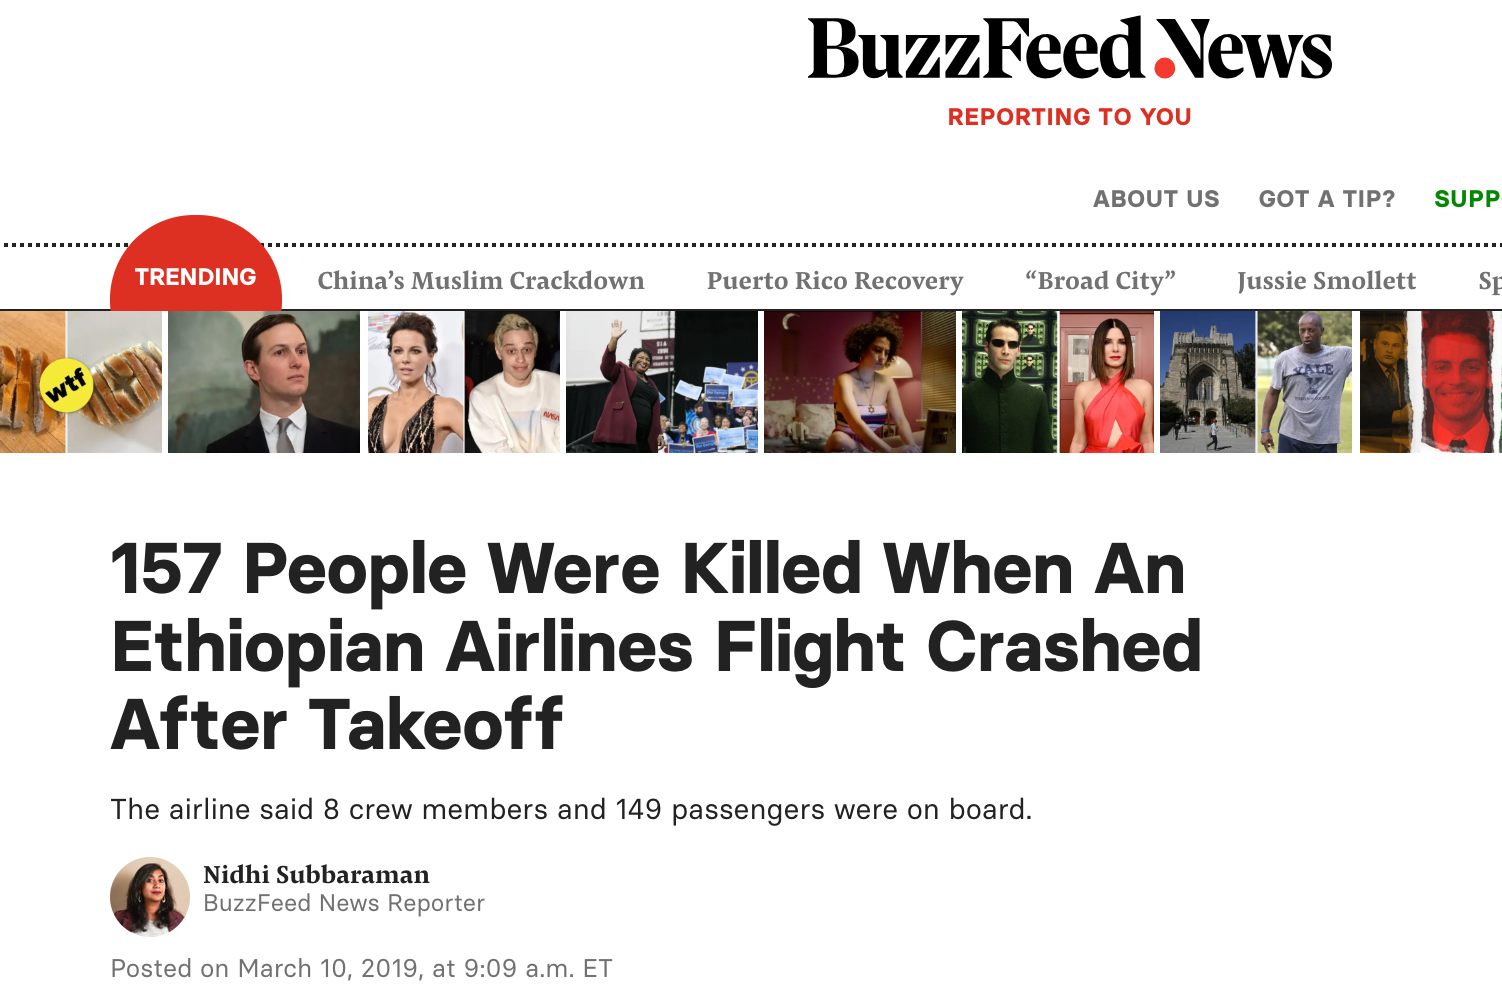 The title of BuzzFeed News about the Ethiopian Airlines Flight Crashed selected by Cora Yuan.